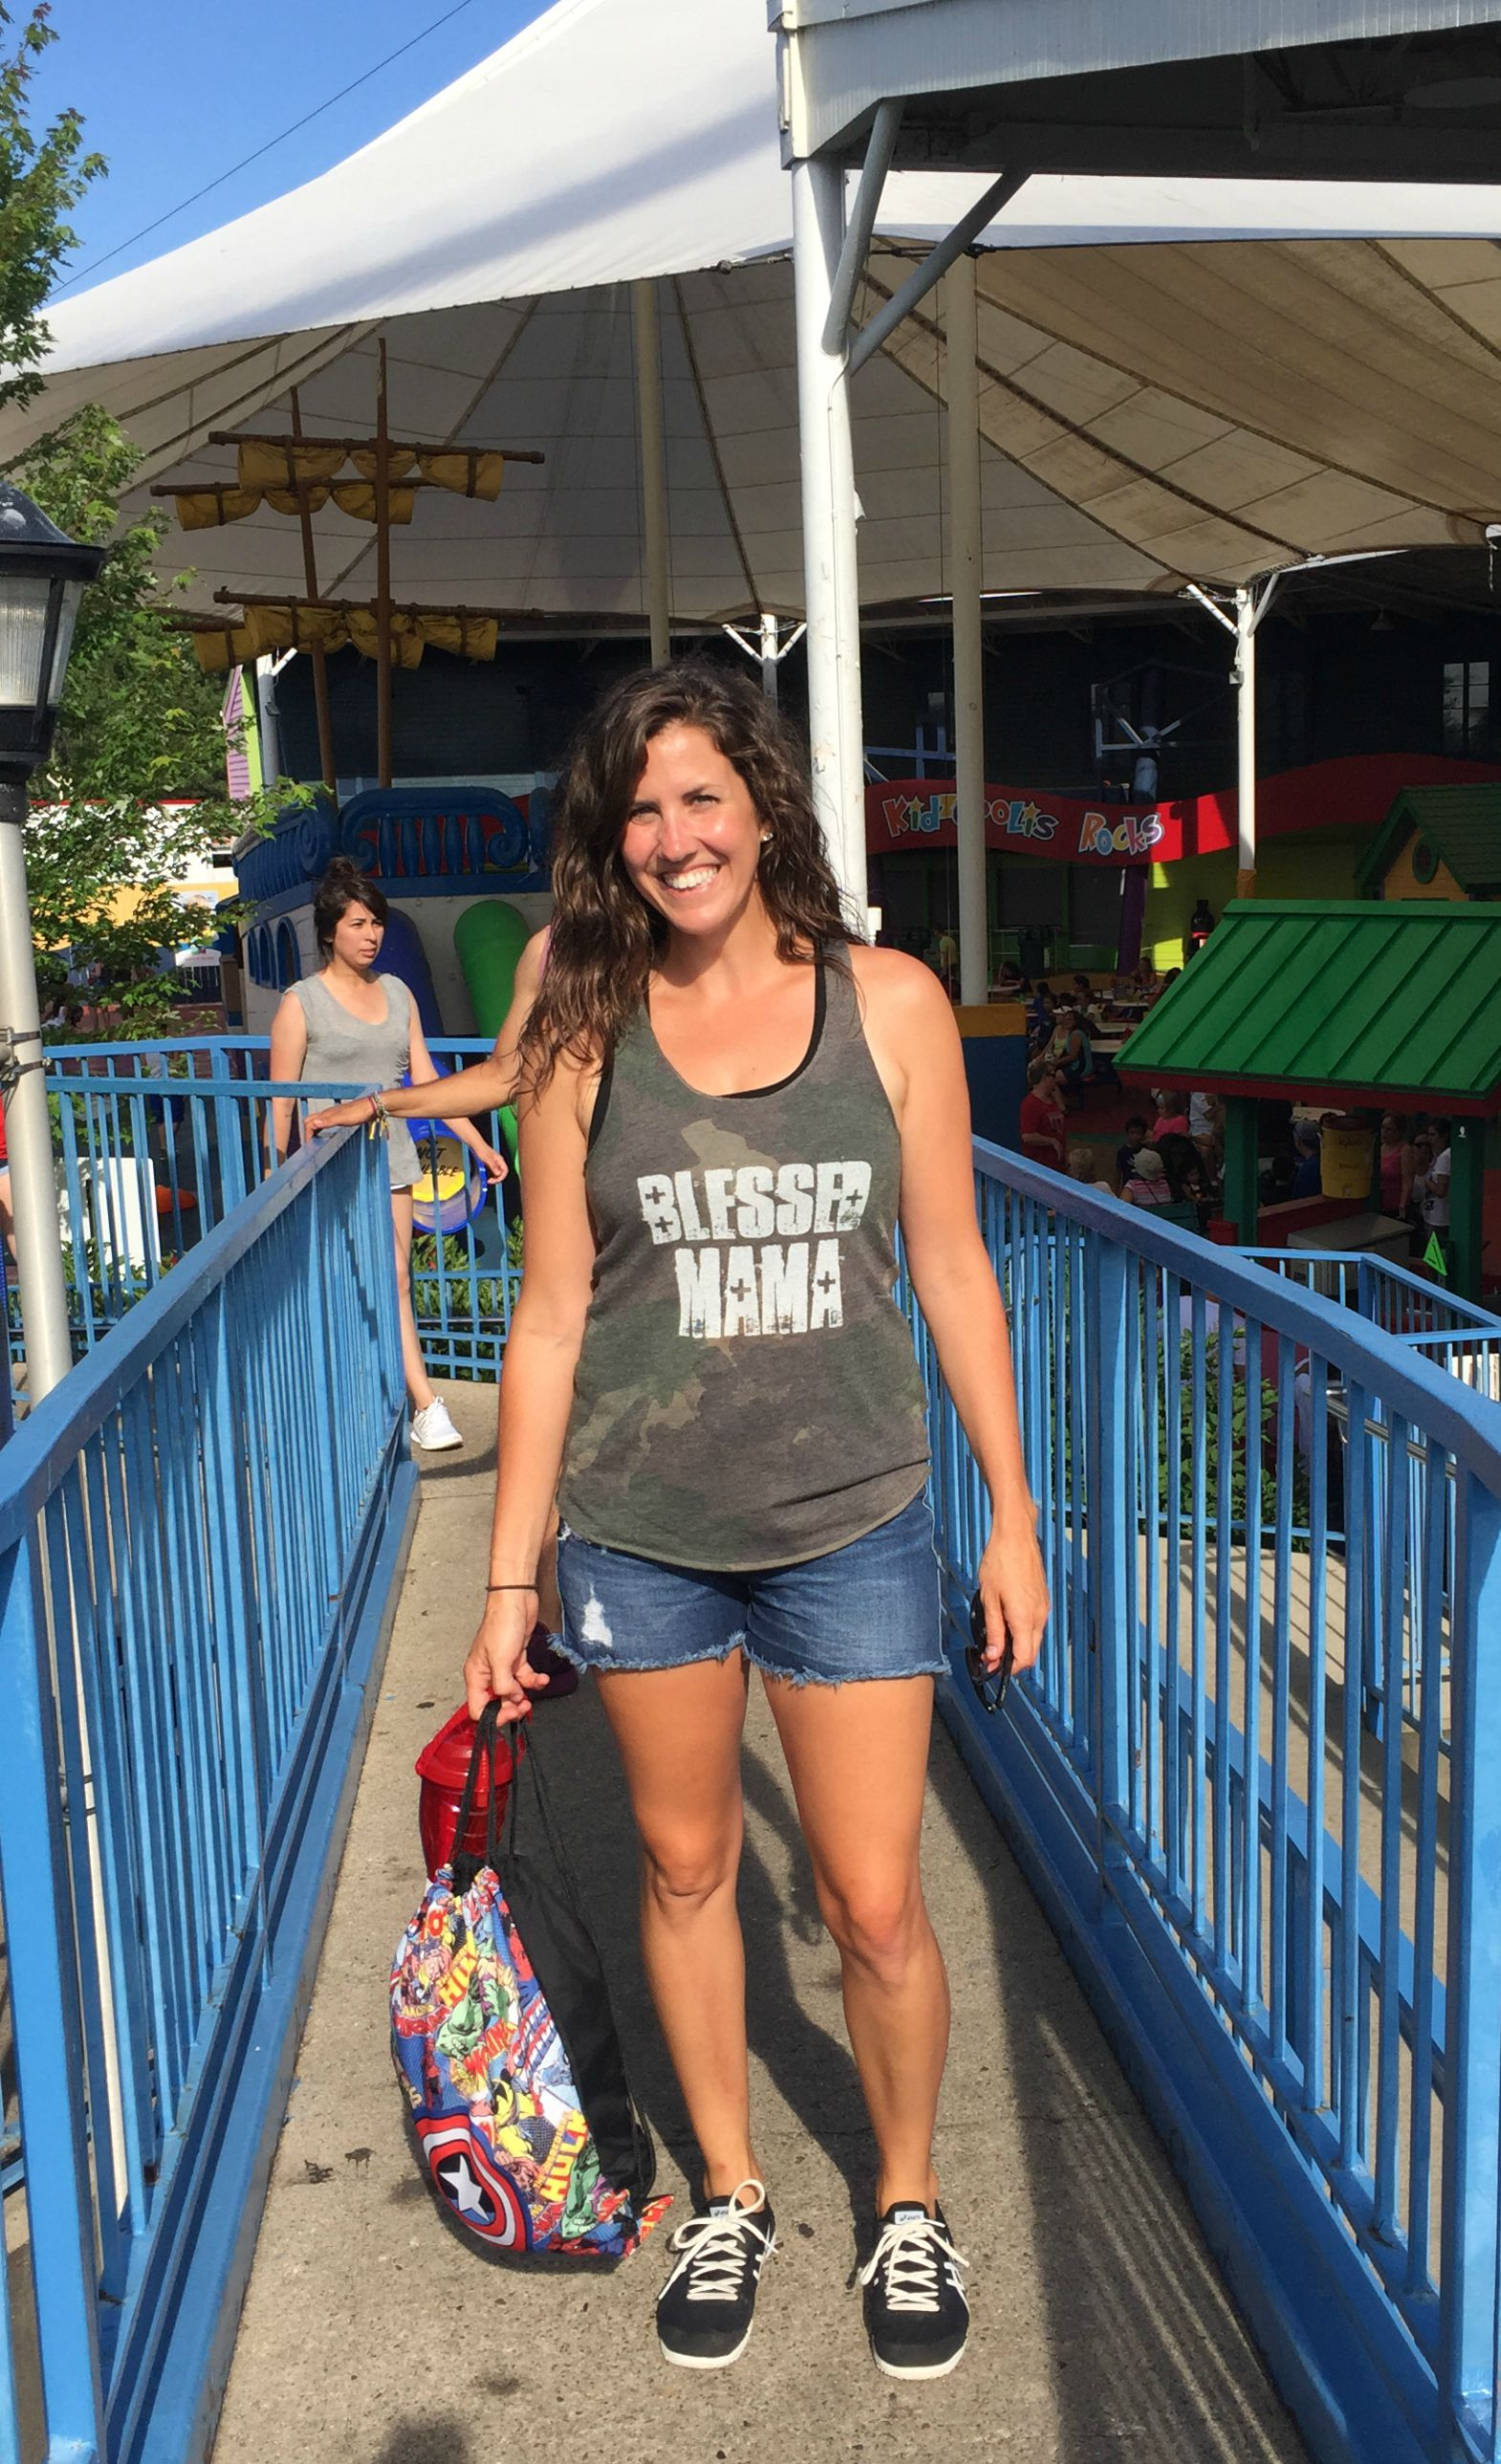 118bfaad97d What to Wear   NOT Wear at the Amusement Park - momma in flip flops